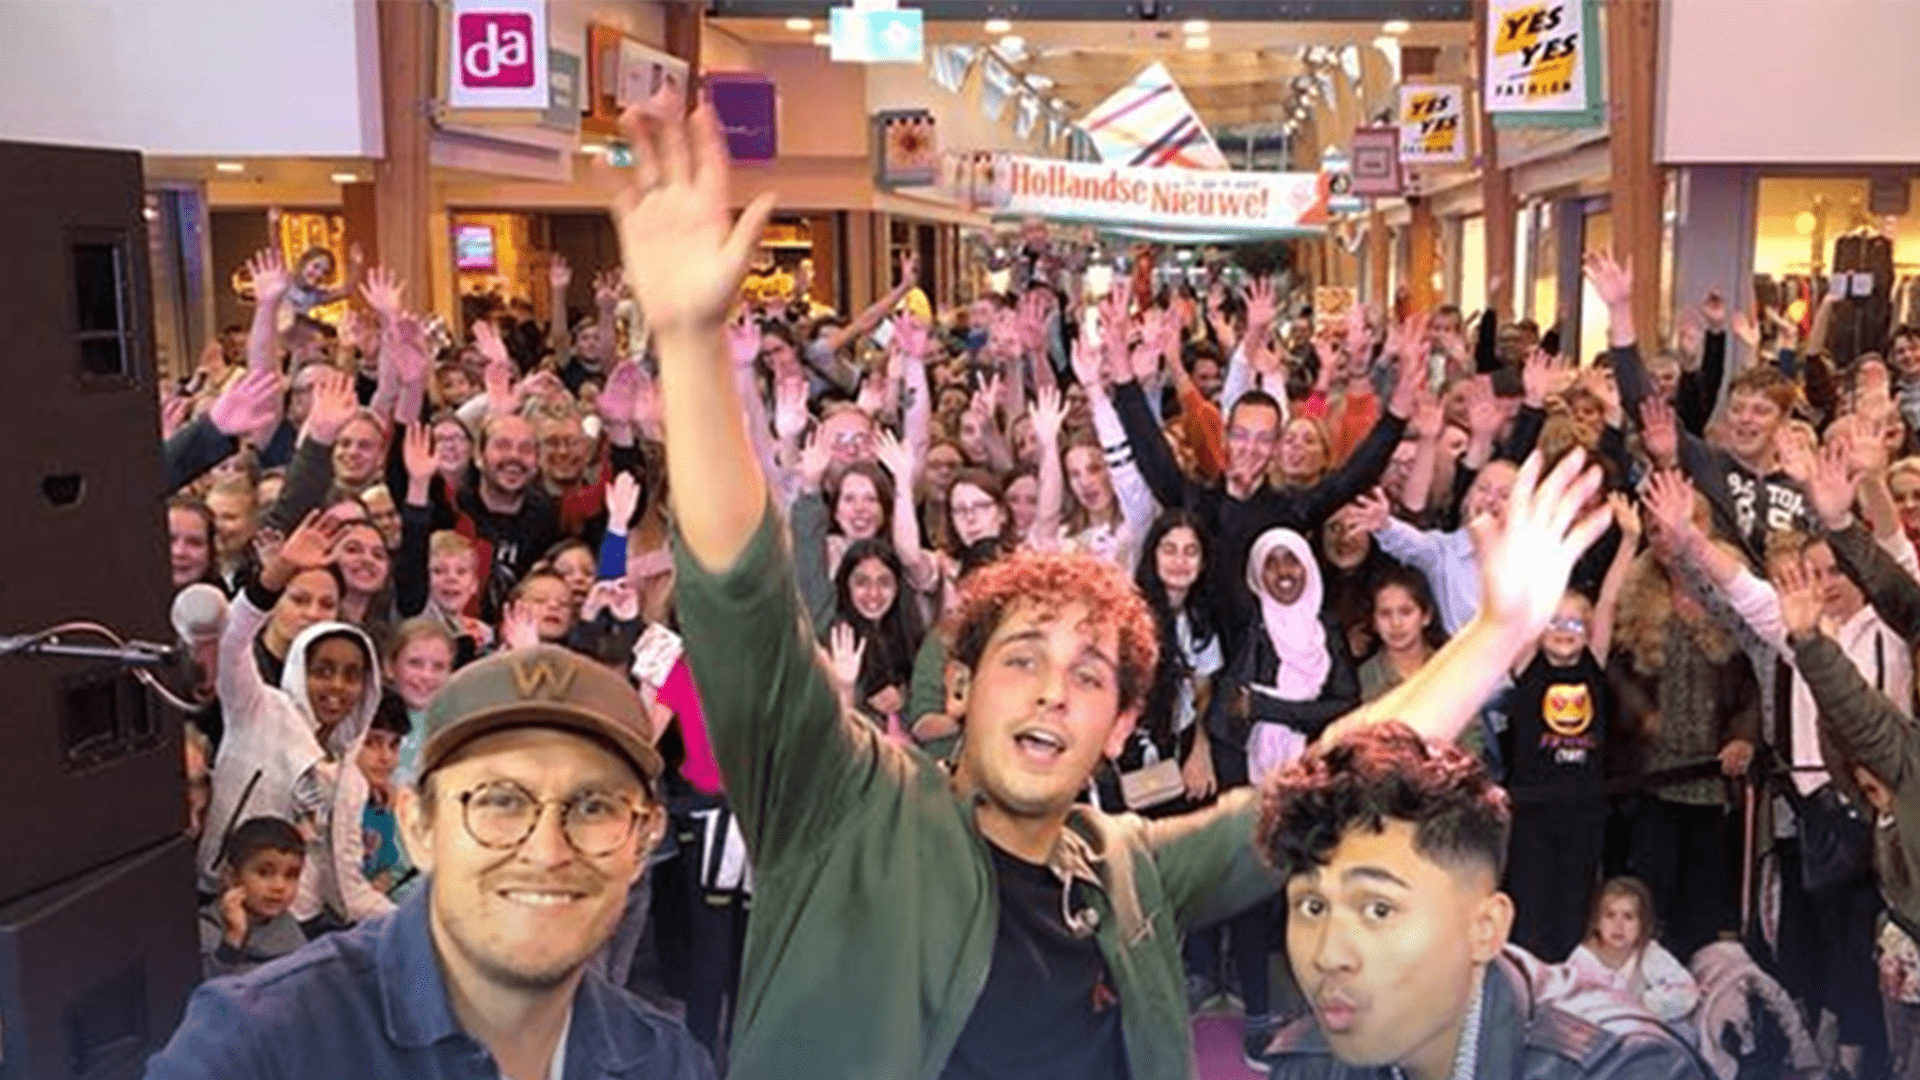 Dutch singer Nielson in shopping mall De Hoven Delft